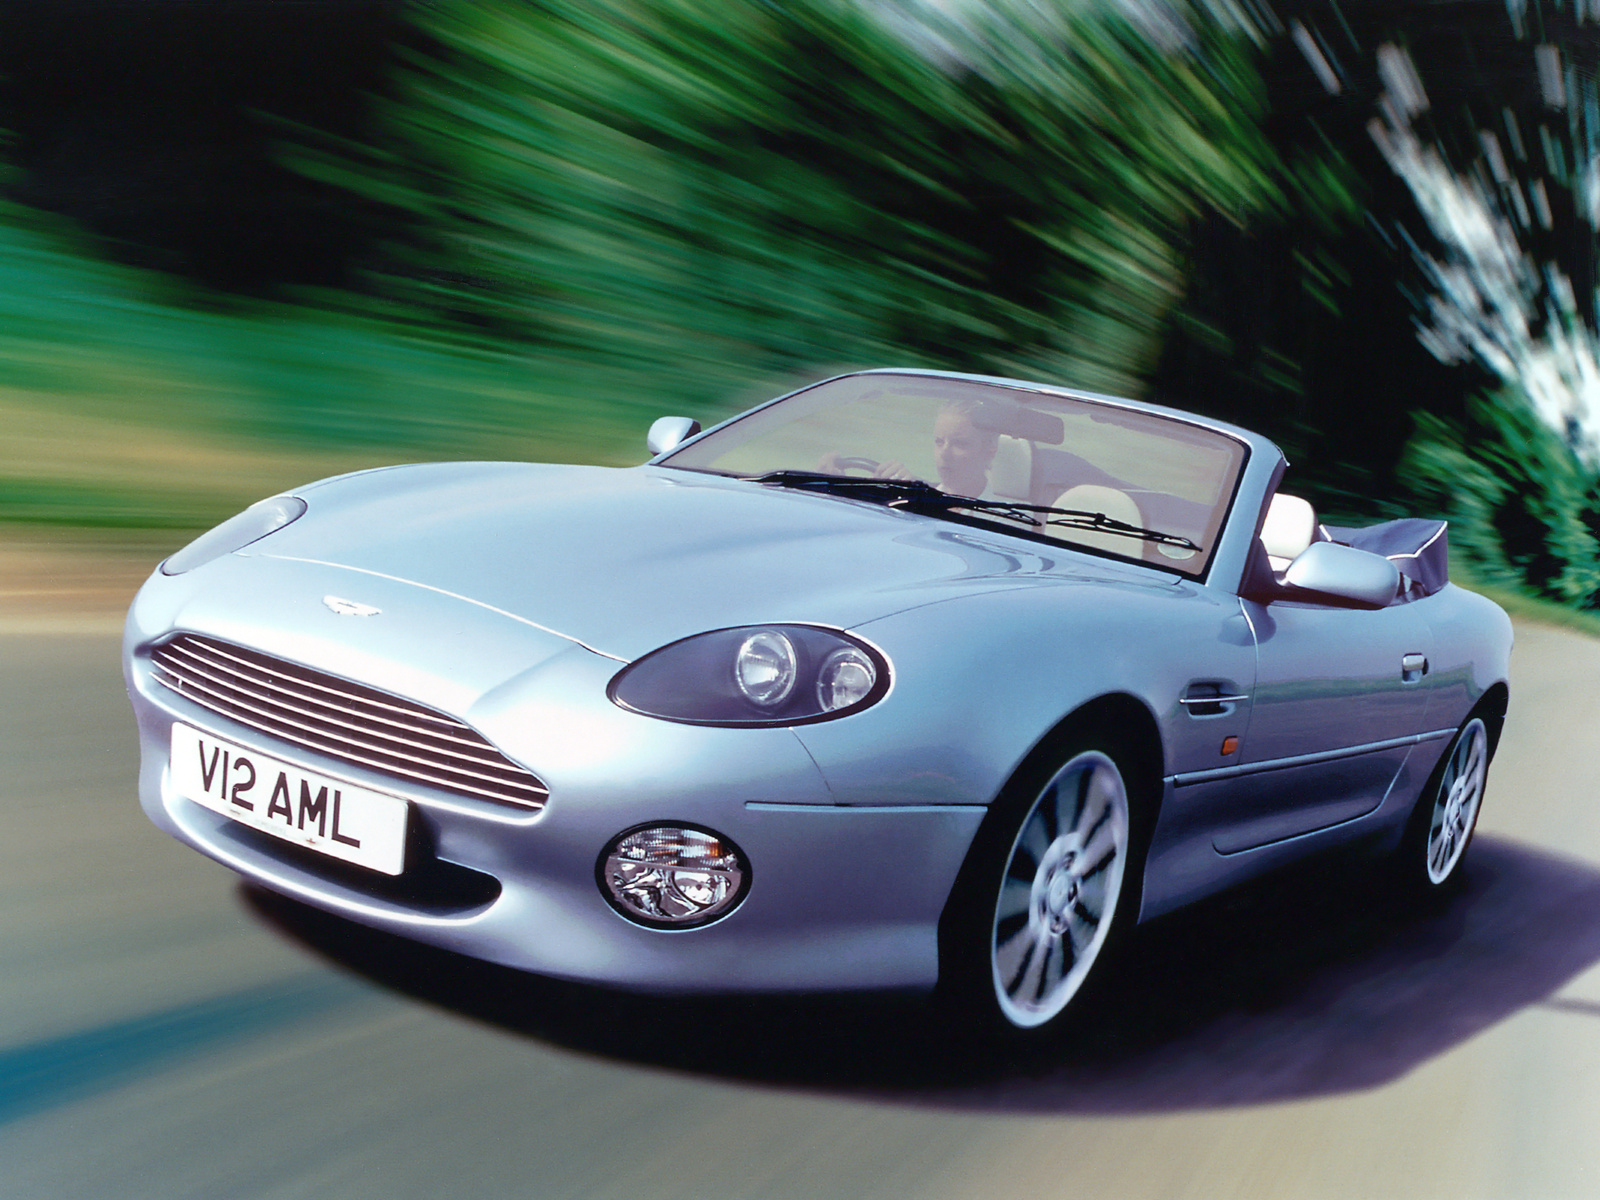 2019 Aston Martin DB7 Vantage photo - 4